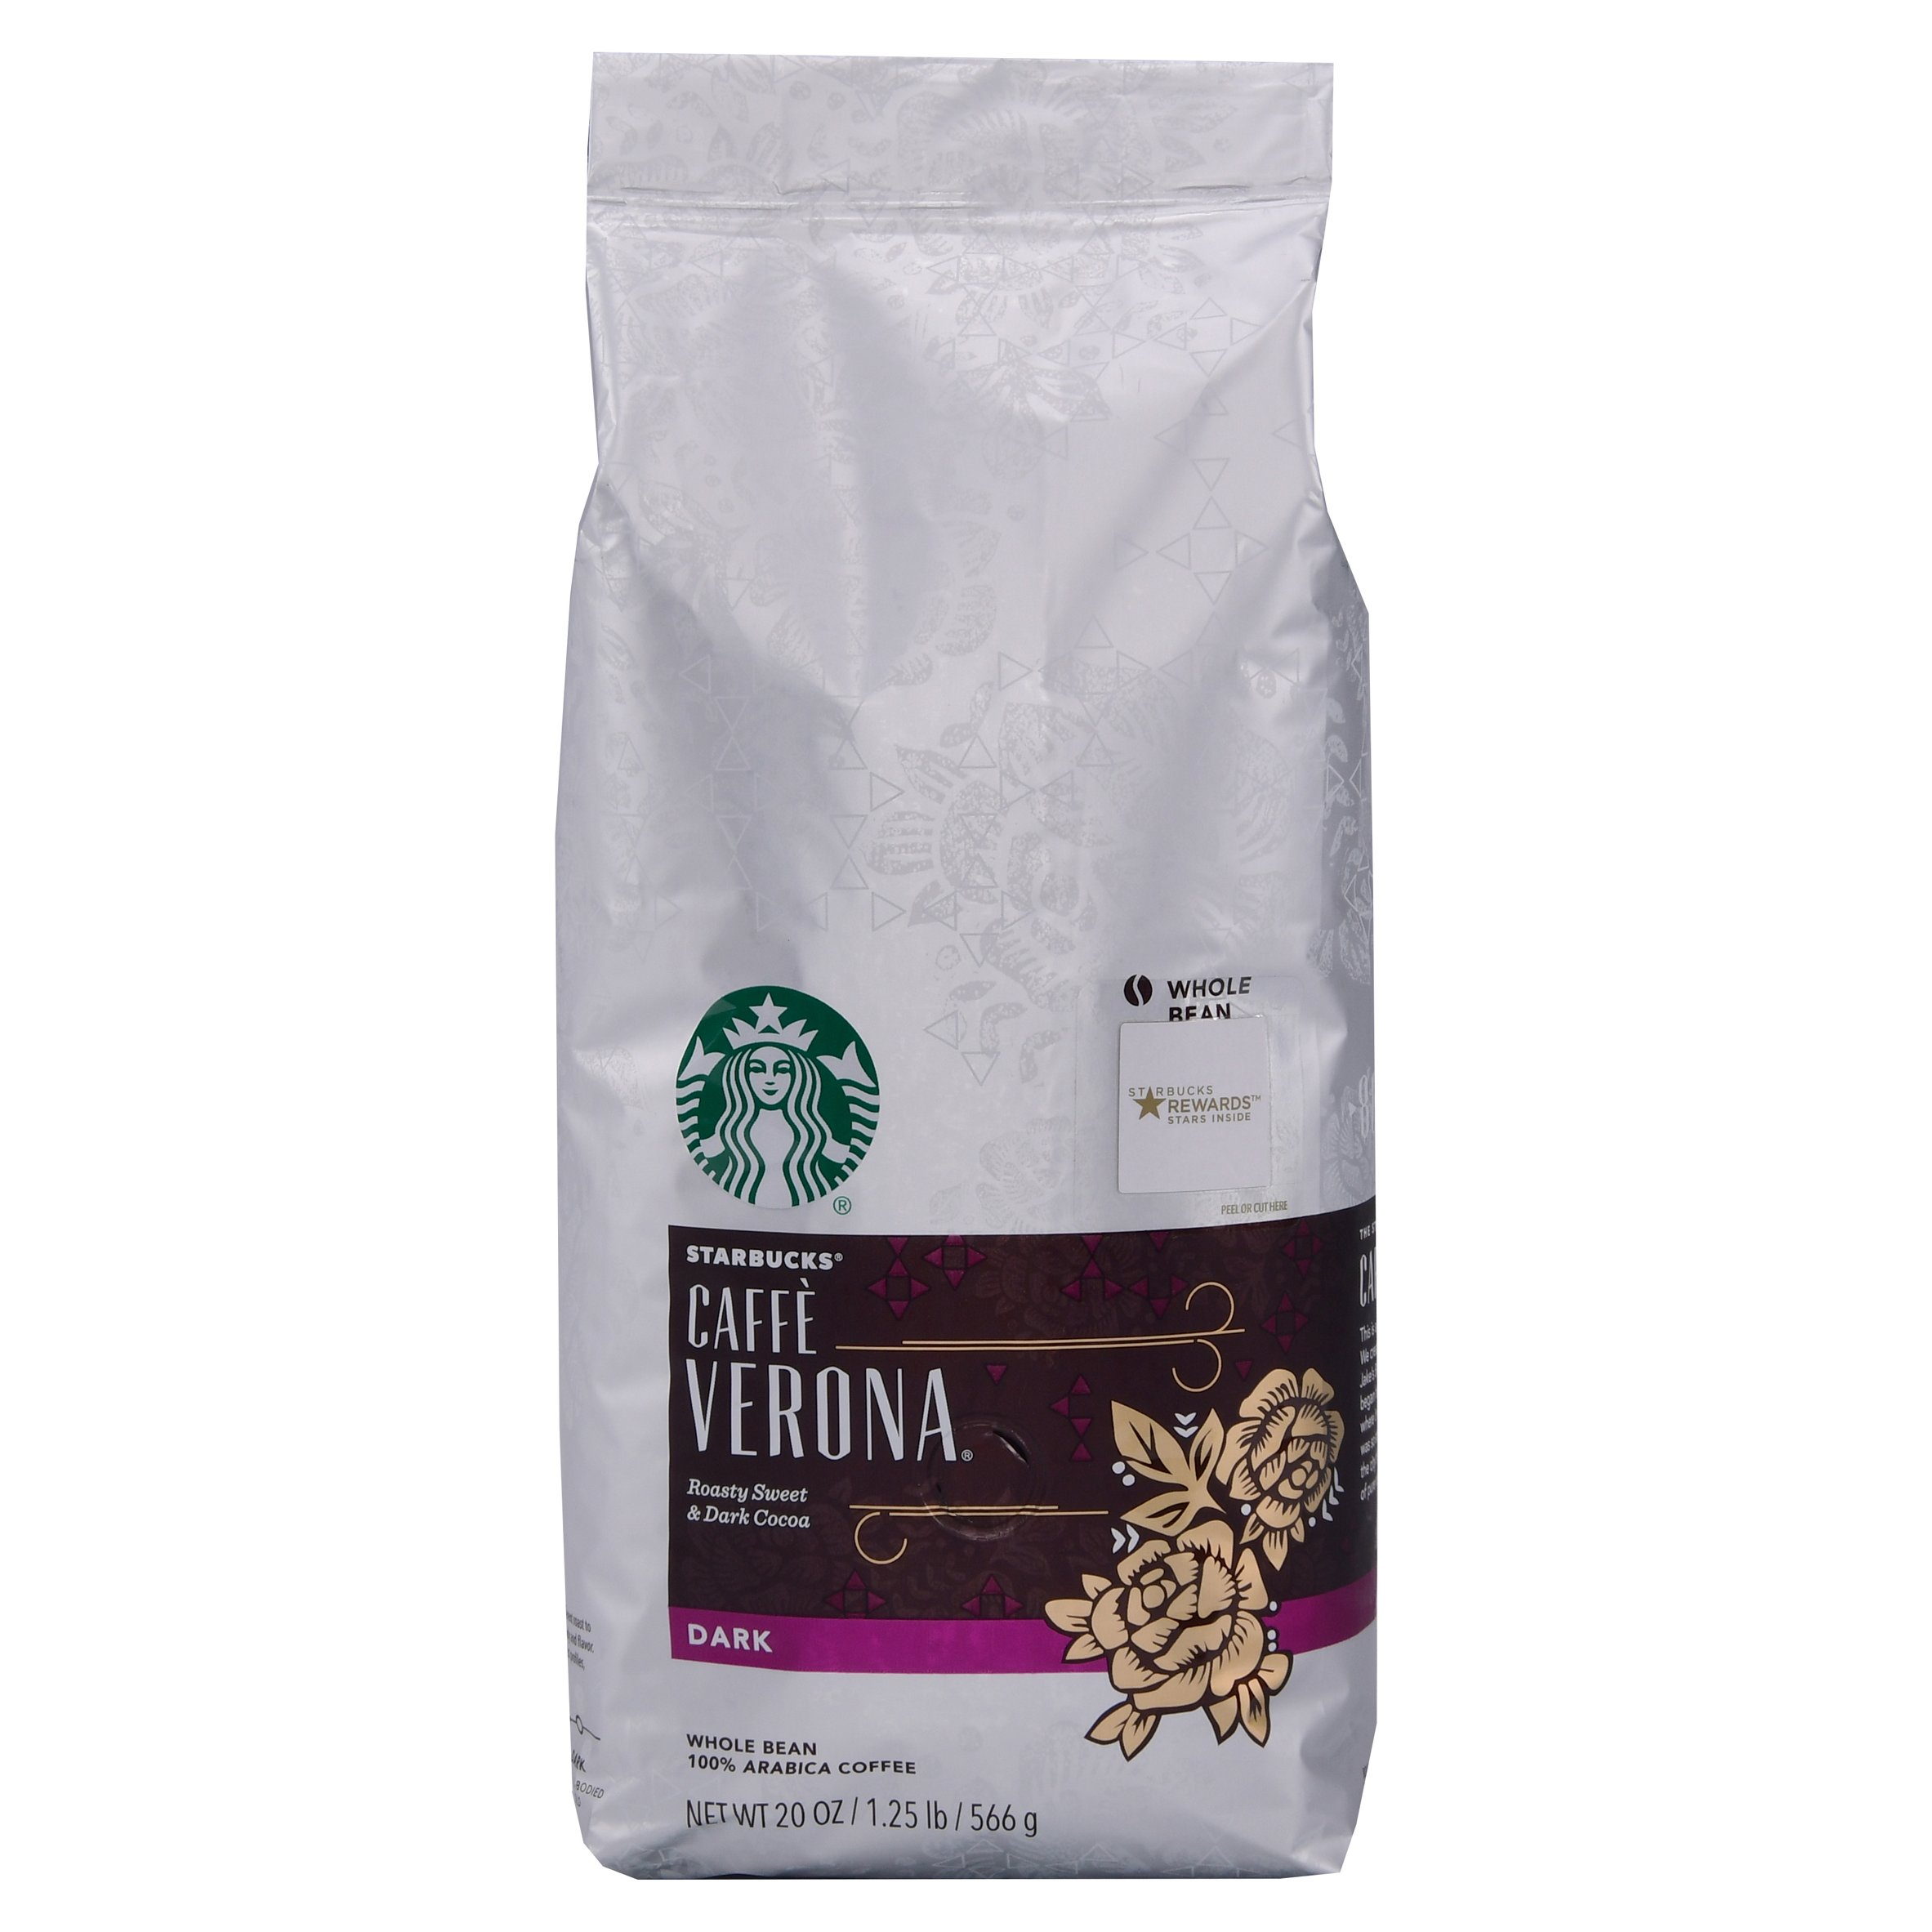 Starbucks Caffè Verona Dark Whole Bean 100% Arabica Coffee, 20 oz by STARBUCKS COFFEE COMPANY